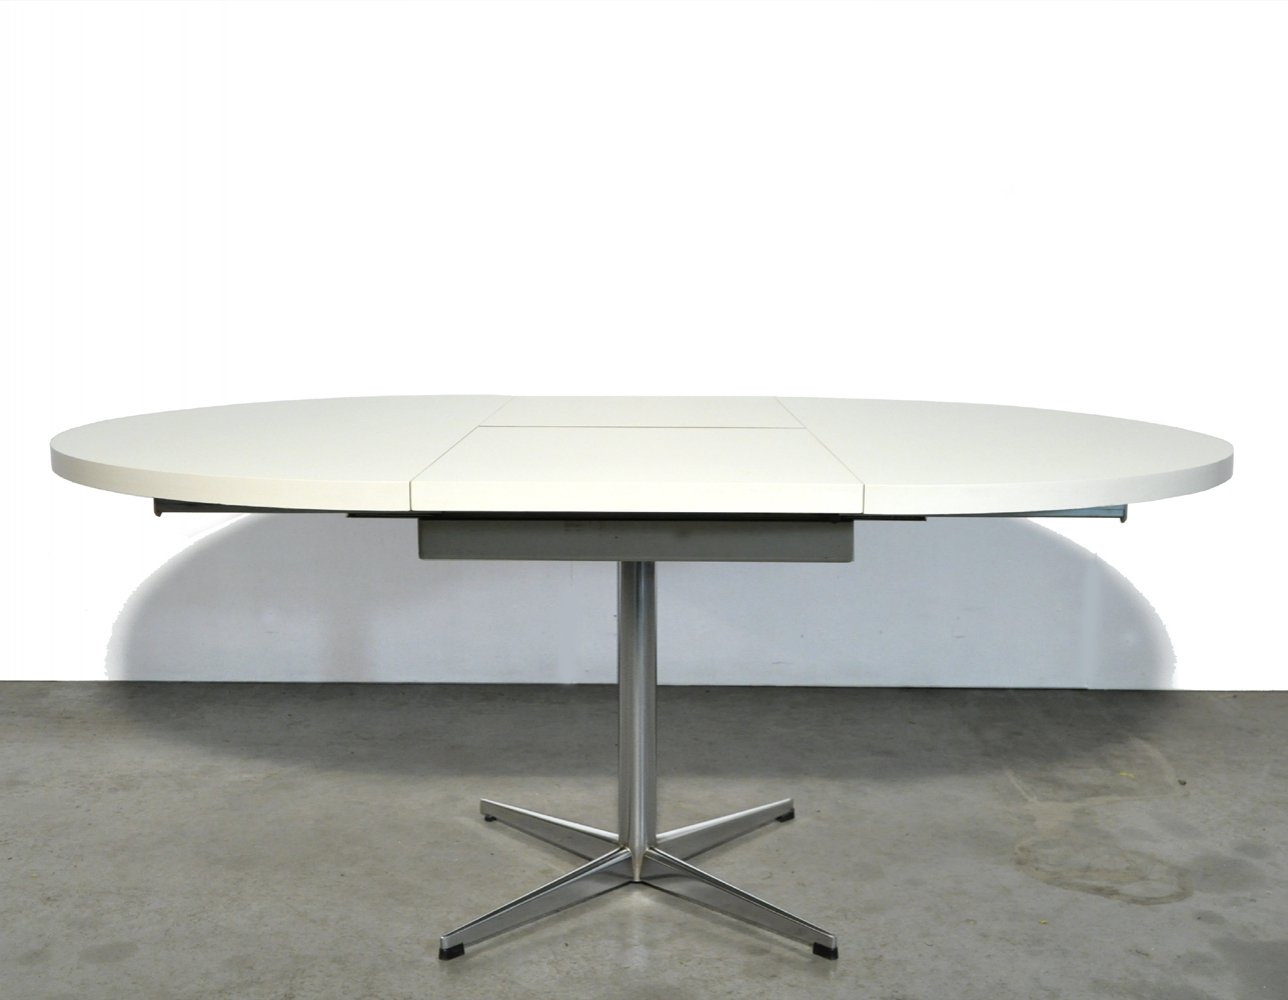 Round extendable dining table by Pastoe, Netherlands 1970s